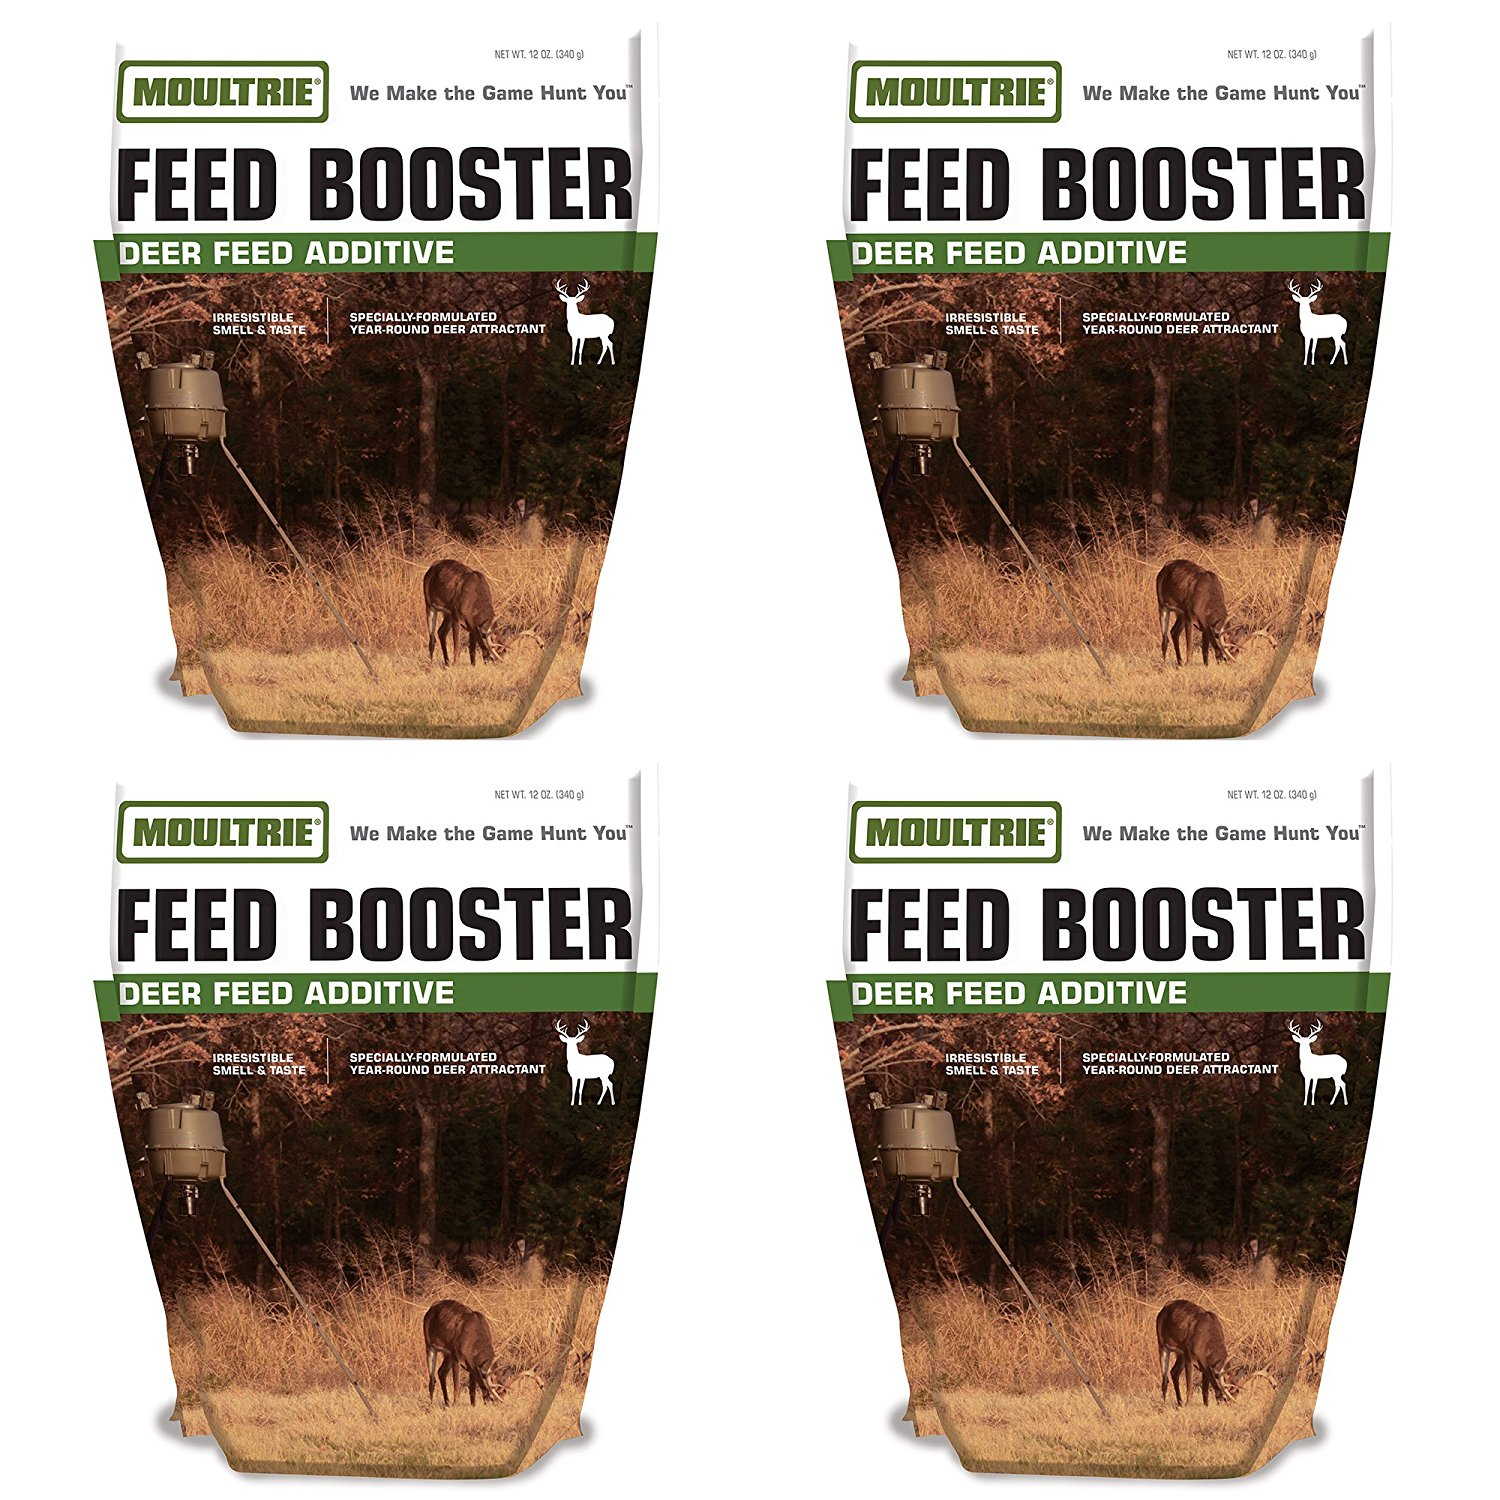 Moultrie Feed Booster Deer and Buck Additive 12-Ounce Bag MFS-13077 (4 Pack)